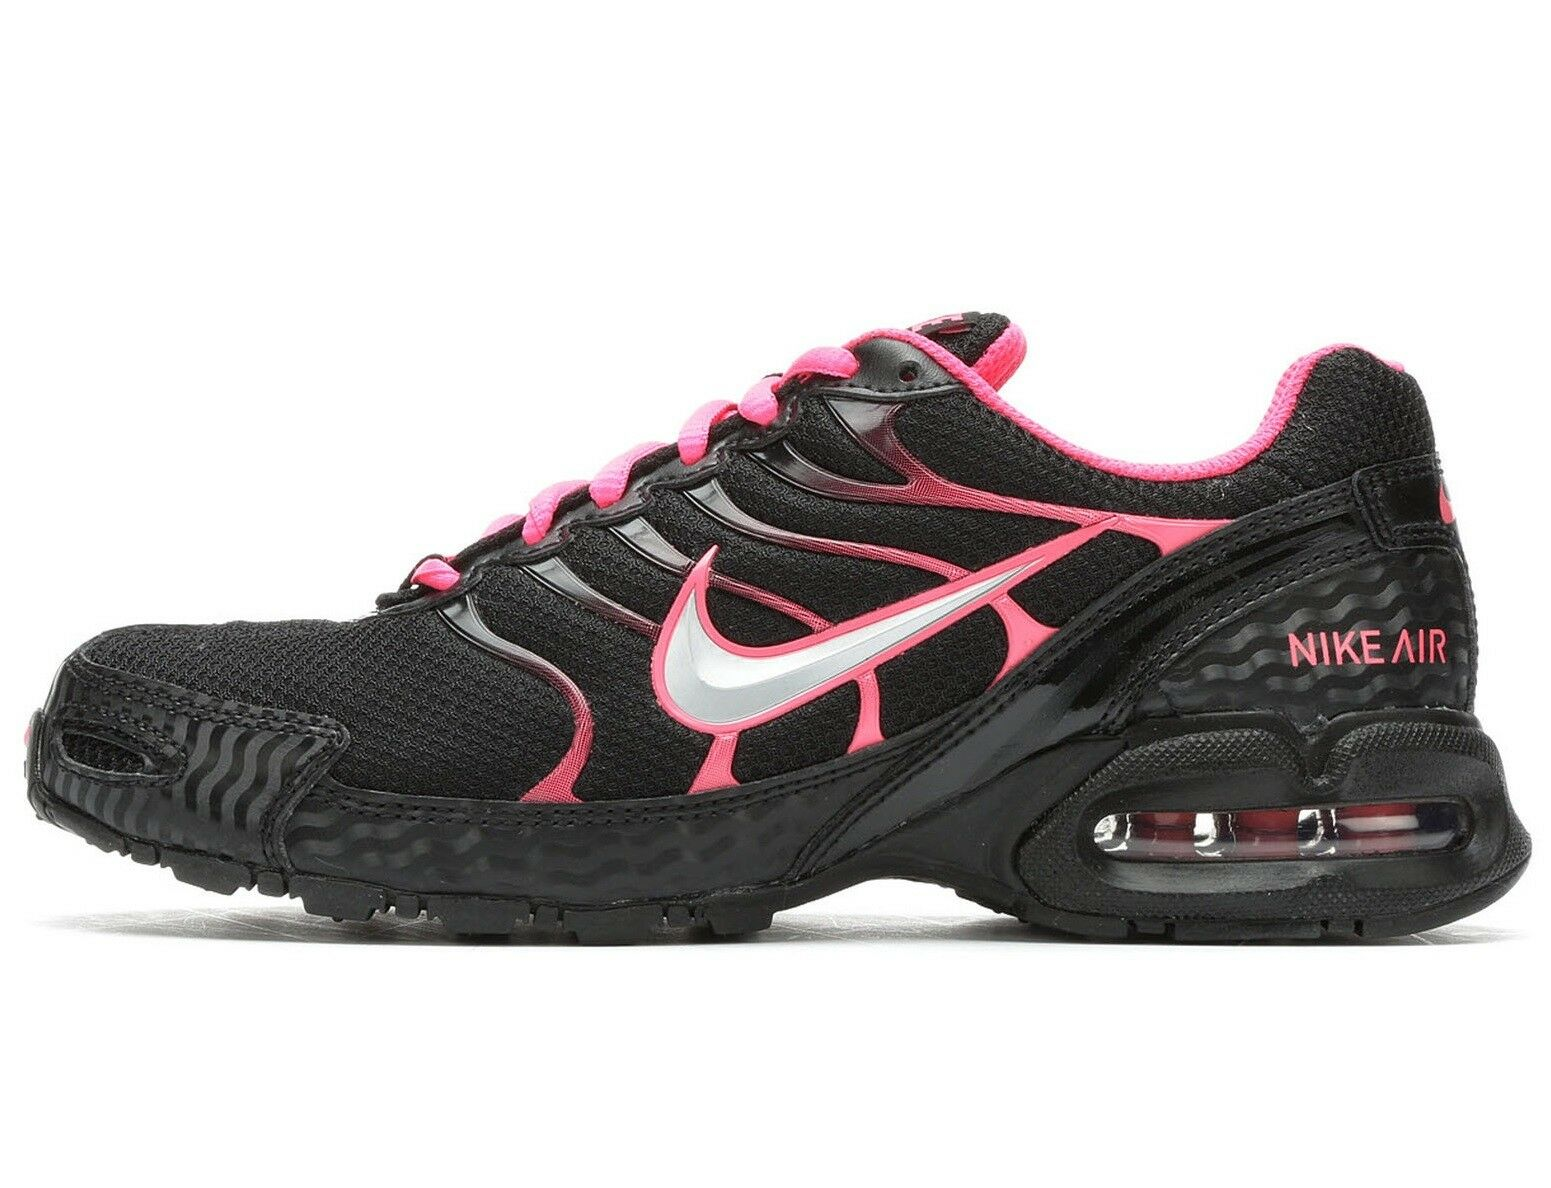 Nike Air Max Torch 4 Womens 343851-006 Black Pink Flash Running shoes Size 8